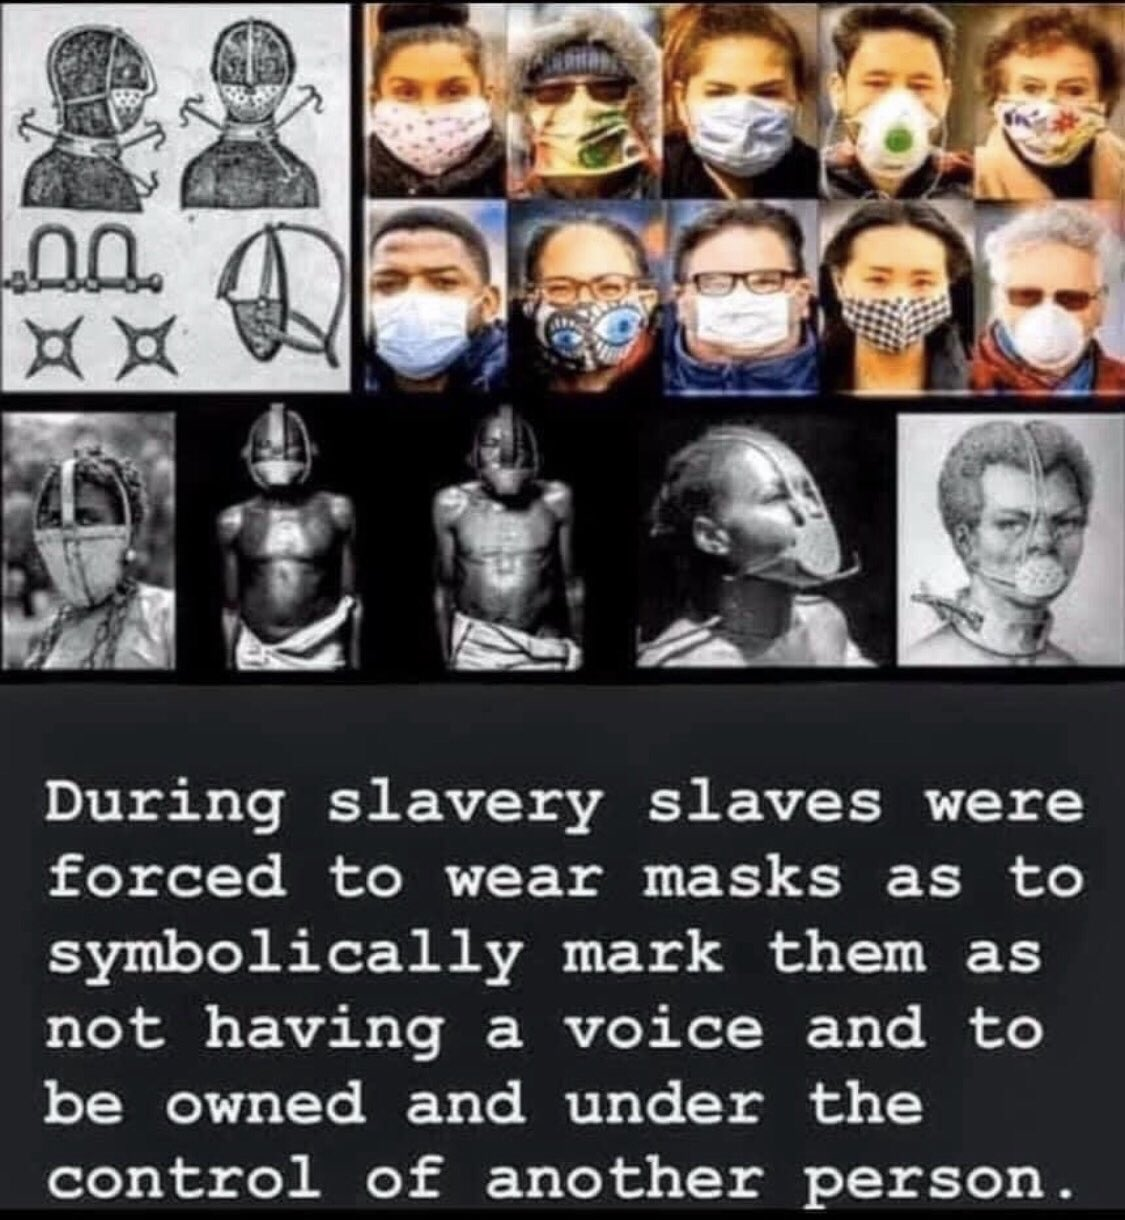 During slavery slaves were forced to wear masks as to symbolically mark them as not having a voice and to be owned and under the control of another person.